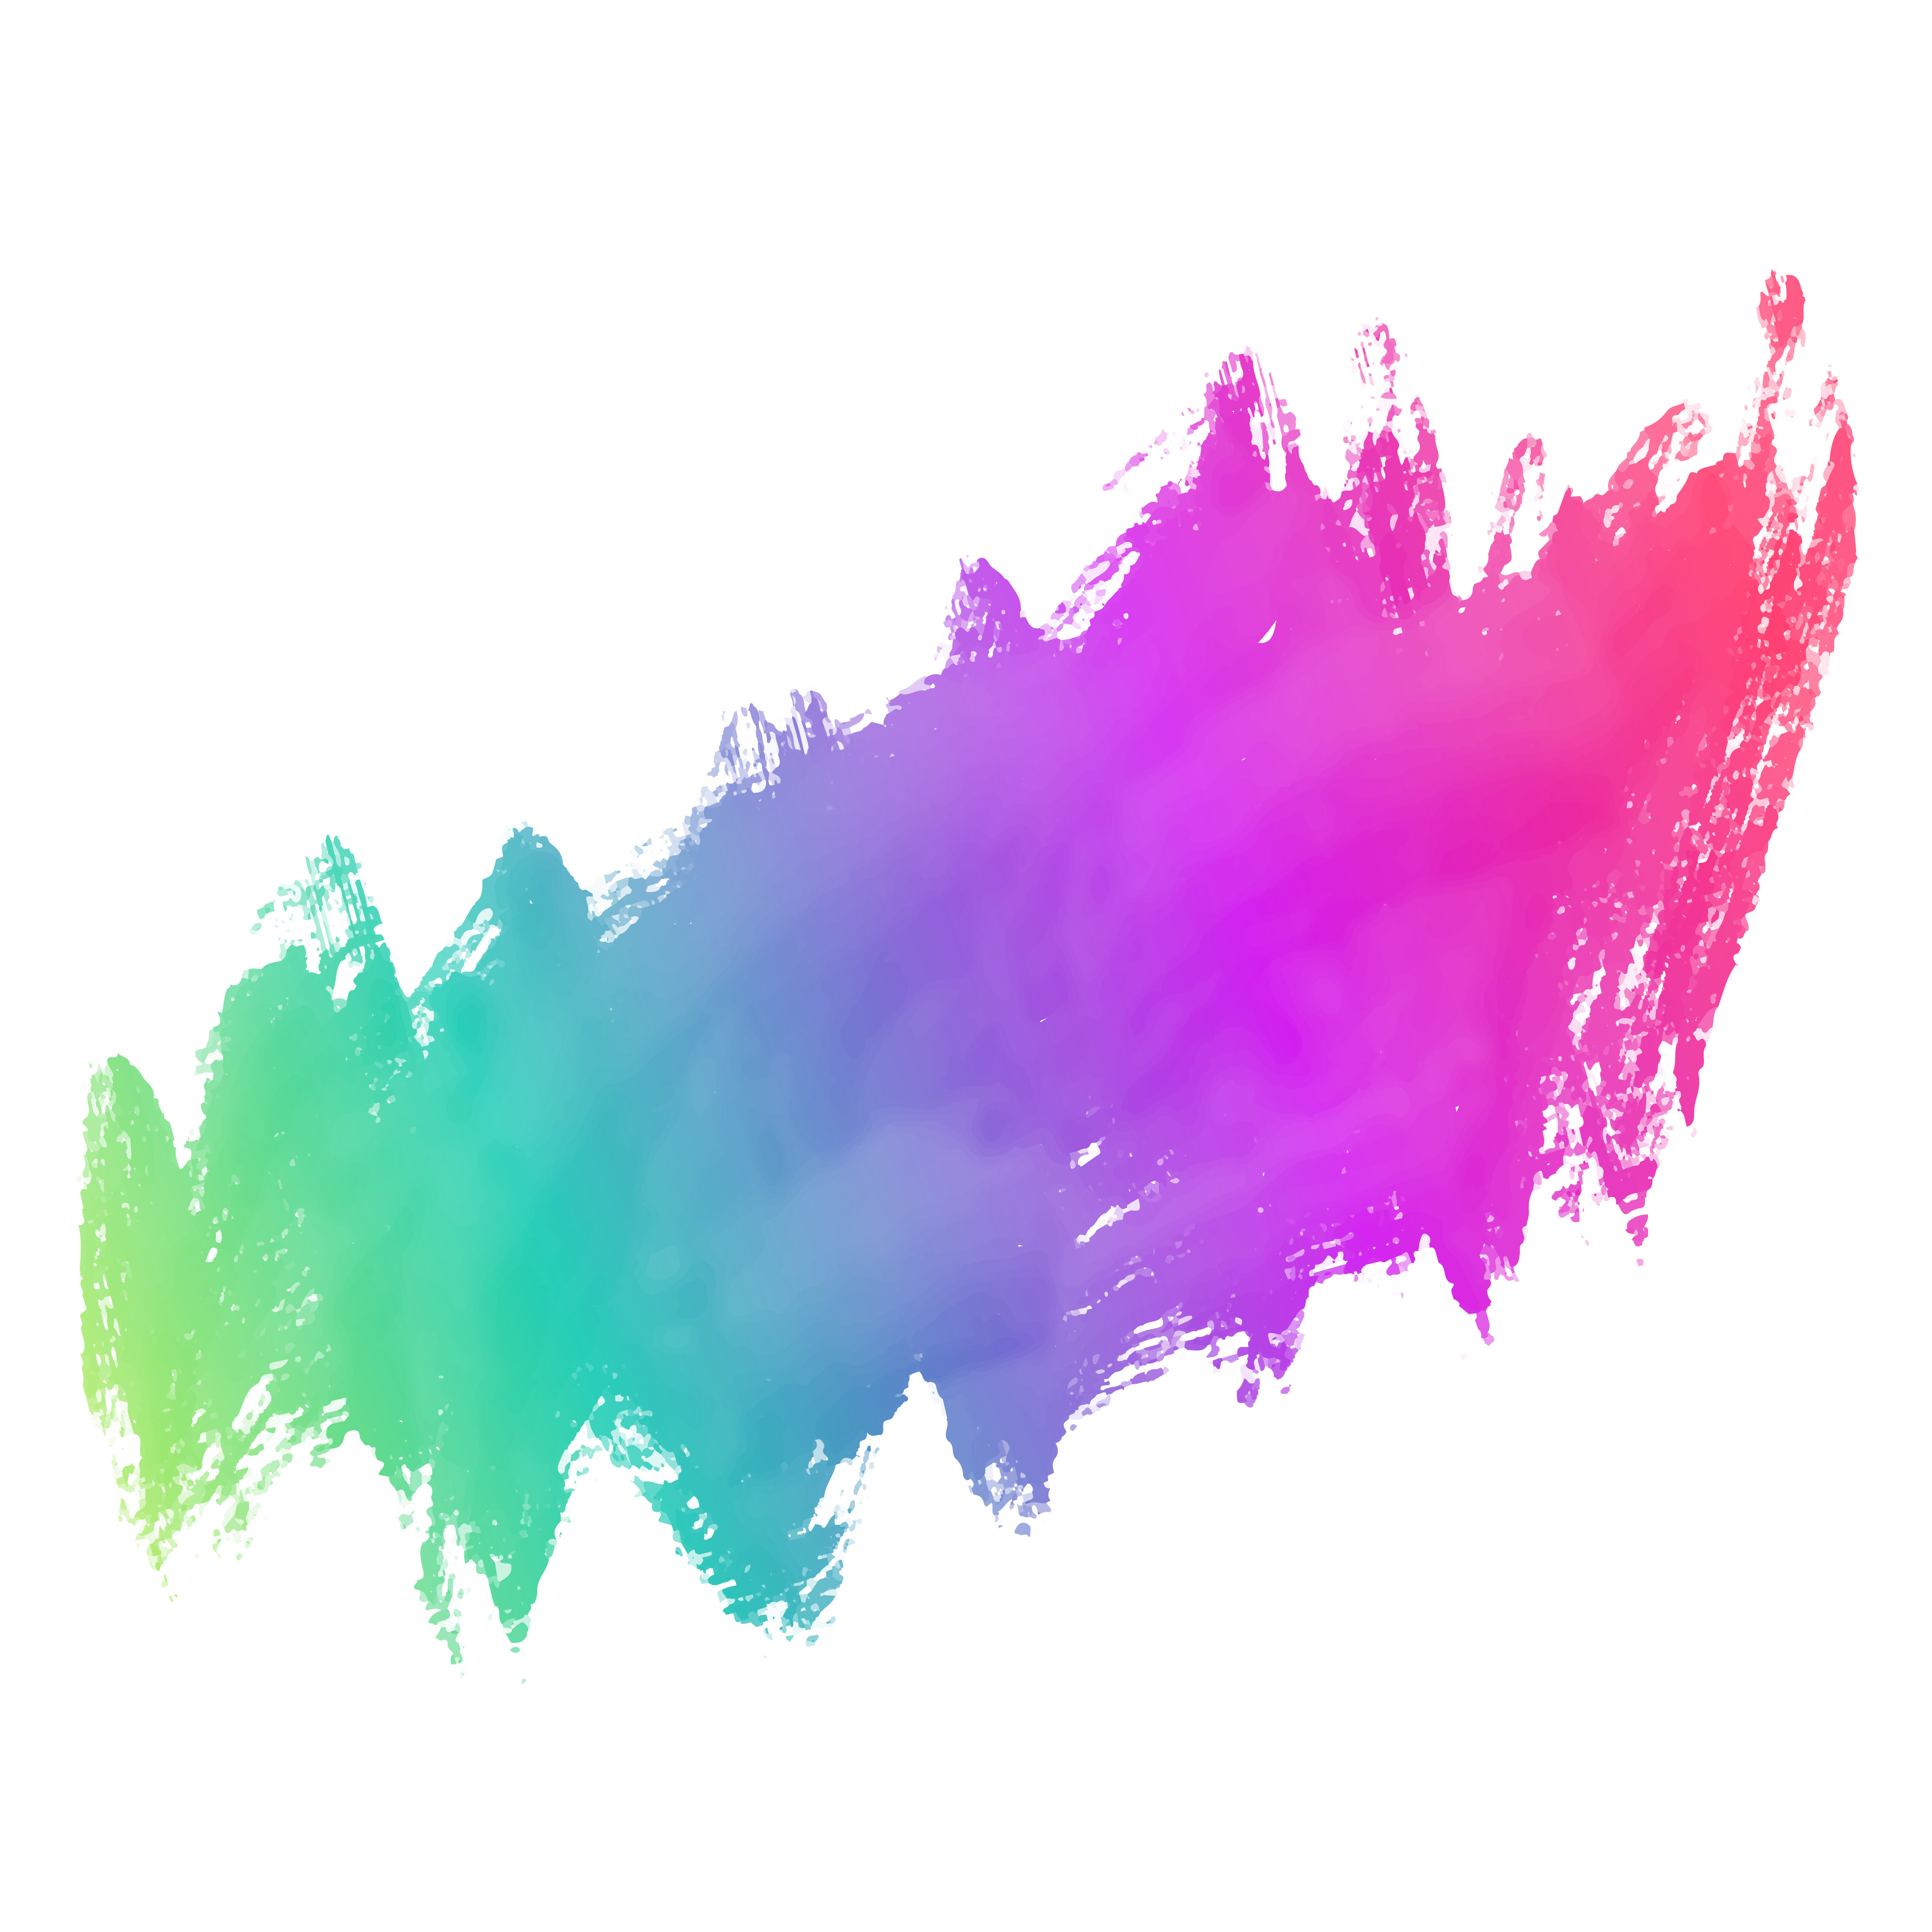 colorful grunge paint stroke background - Download Free ...